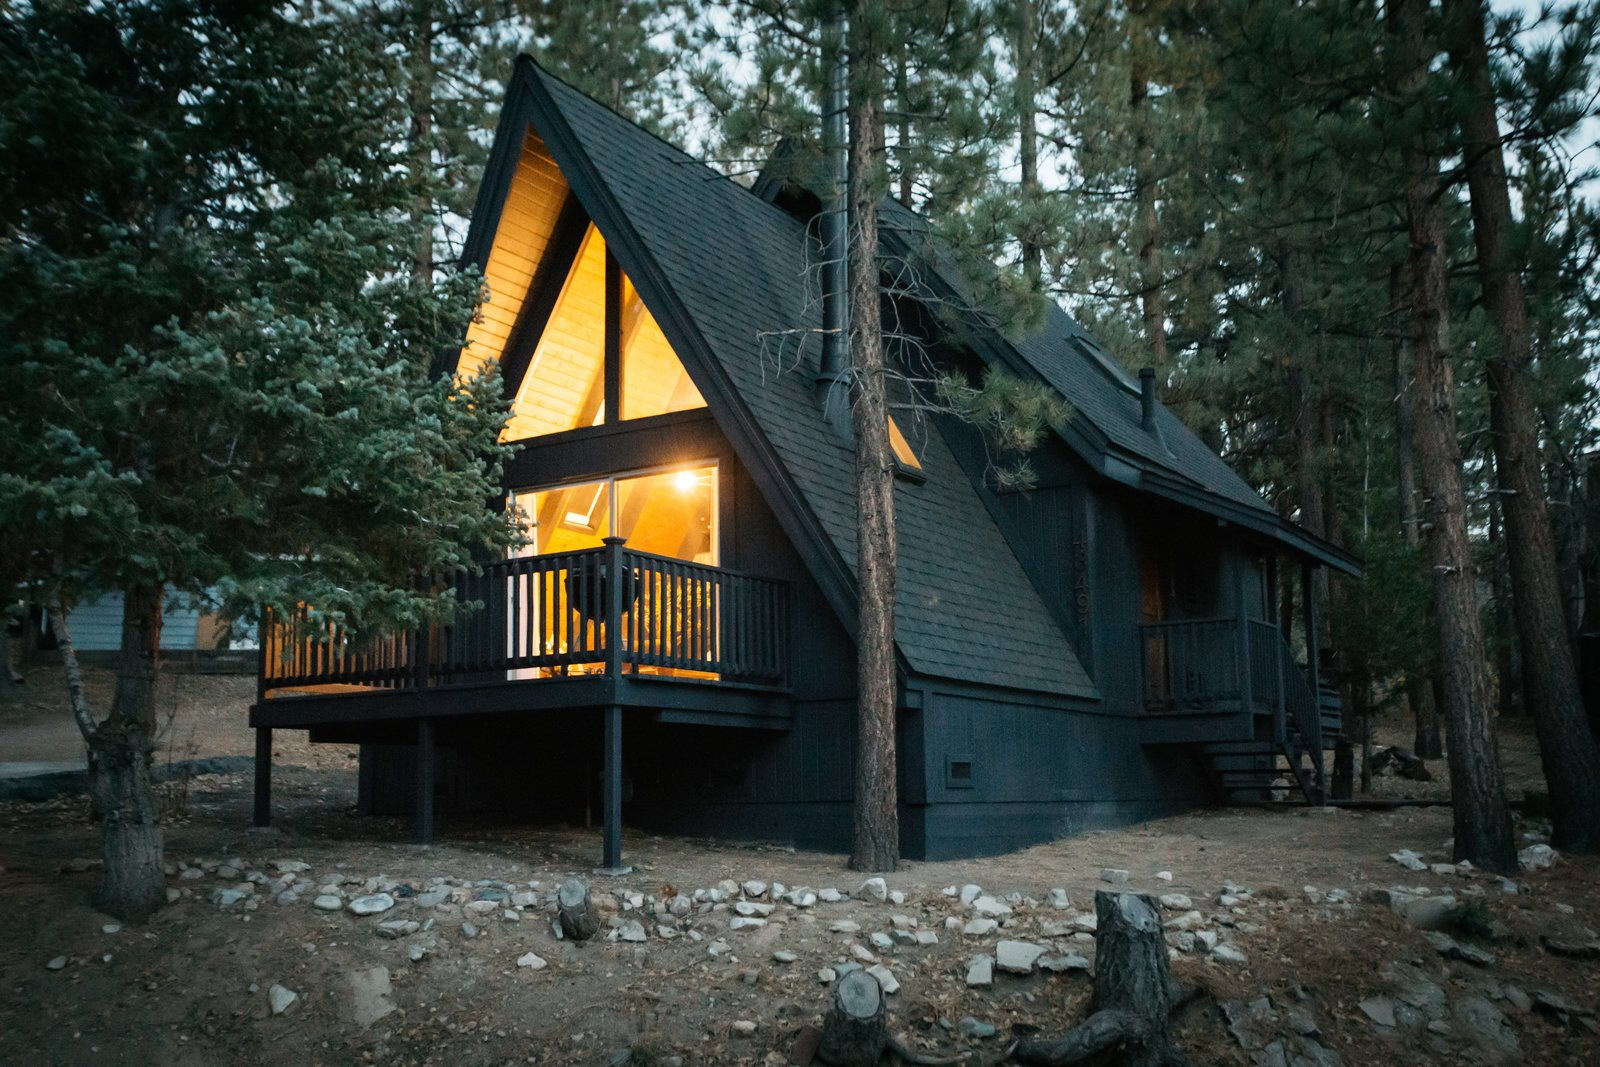 Courtney Poulos' Eclectic A-Frame House